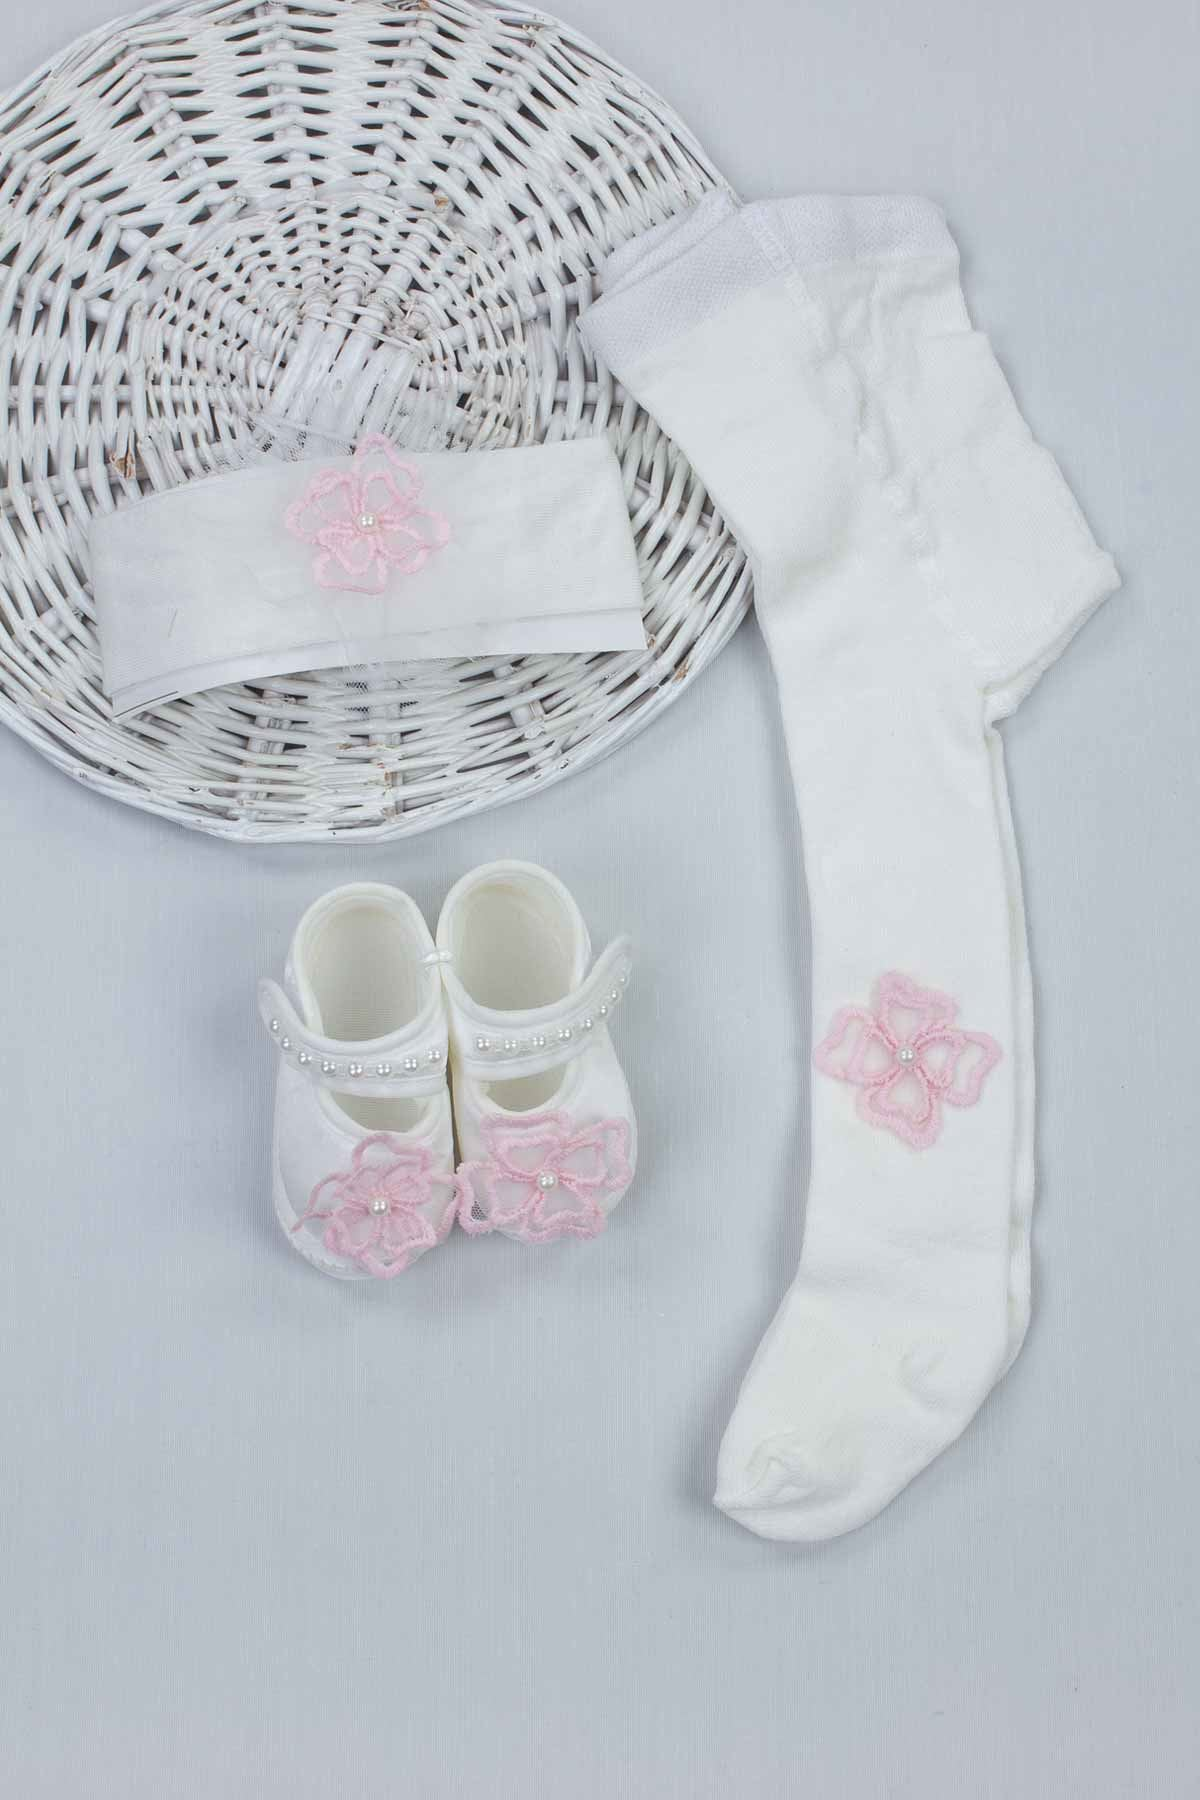 Pink White Baby Girl Newborn Gift Suit Set Girls Babies Tights Stockings Hair Bandana Shoes Fashion Style 2021 Mom Gift package